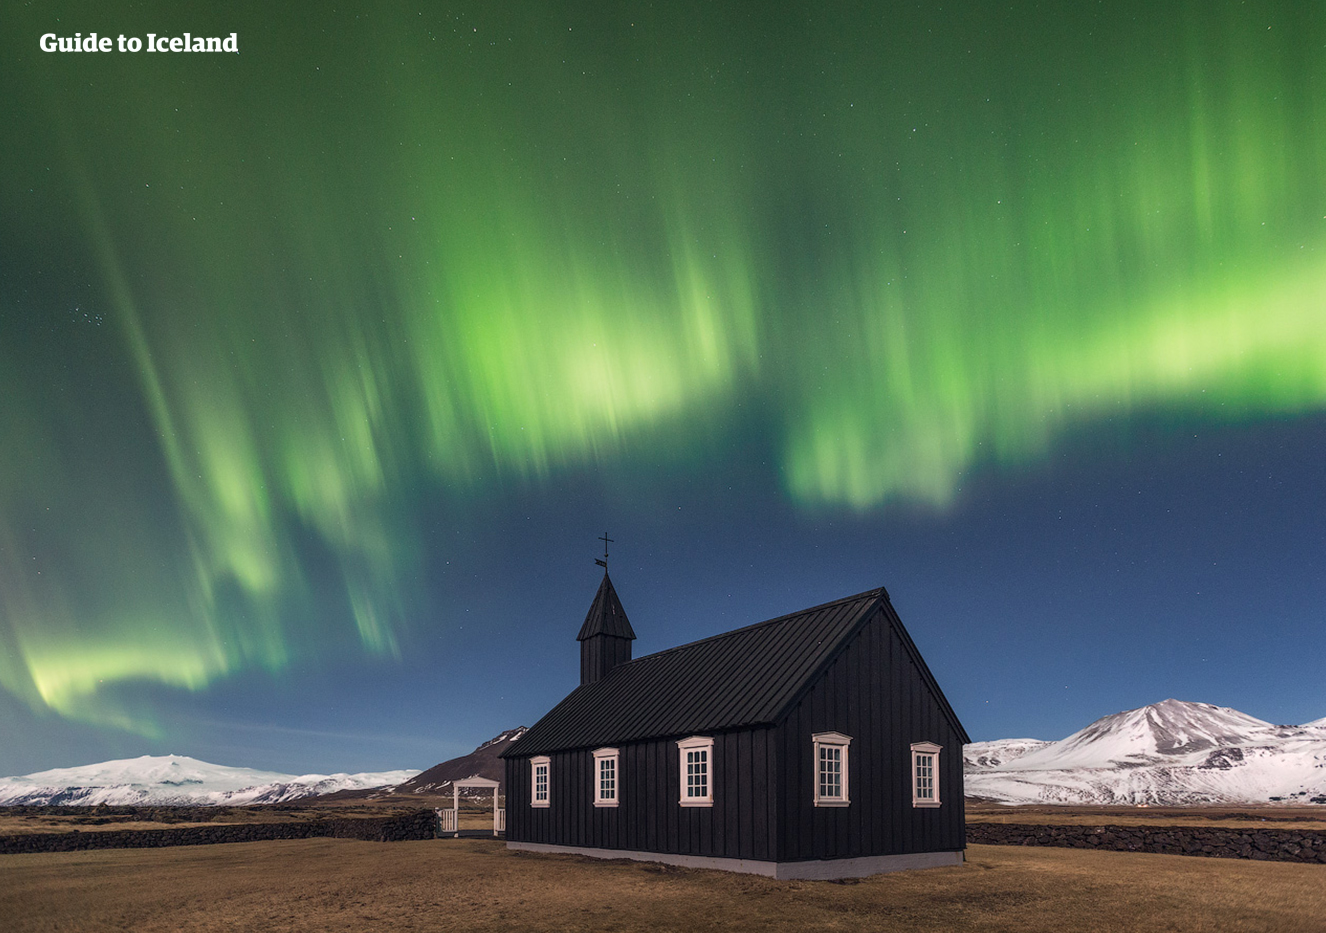 10 Day Northern Lights Winter Self Drive of Iceland's South Coast & Snaefellsnes Peninsula - day 2